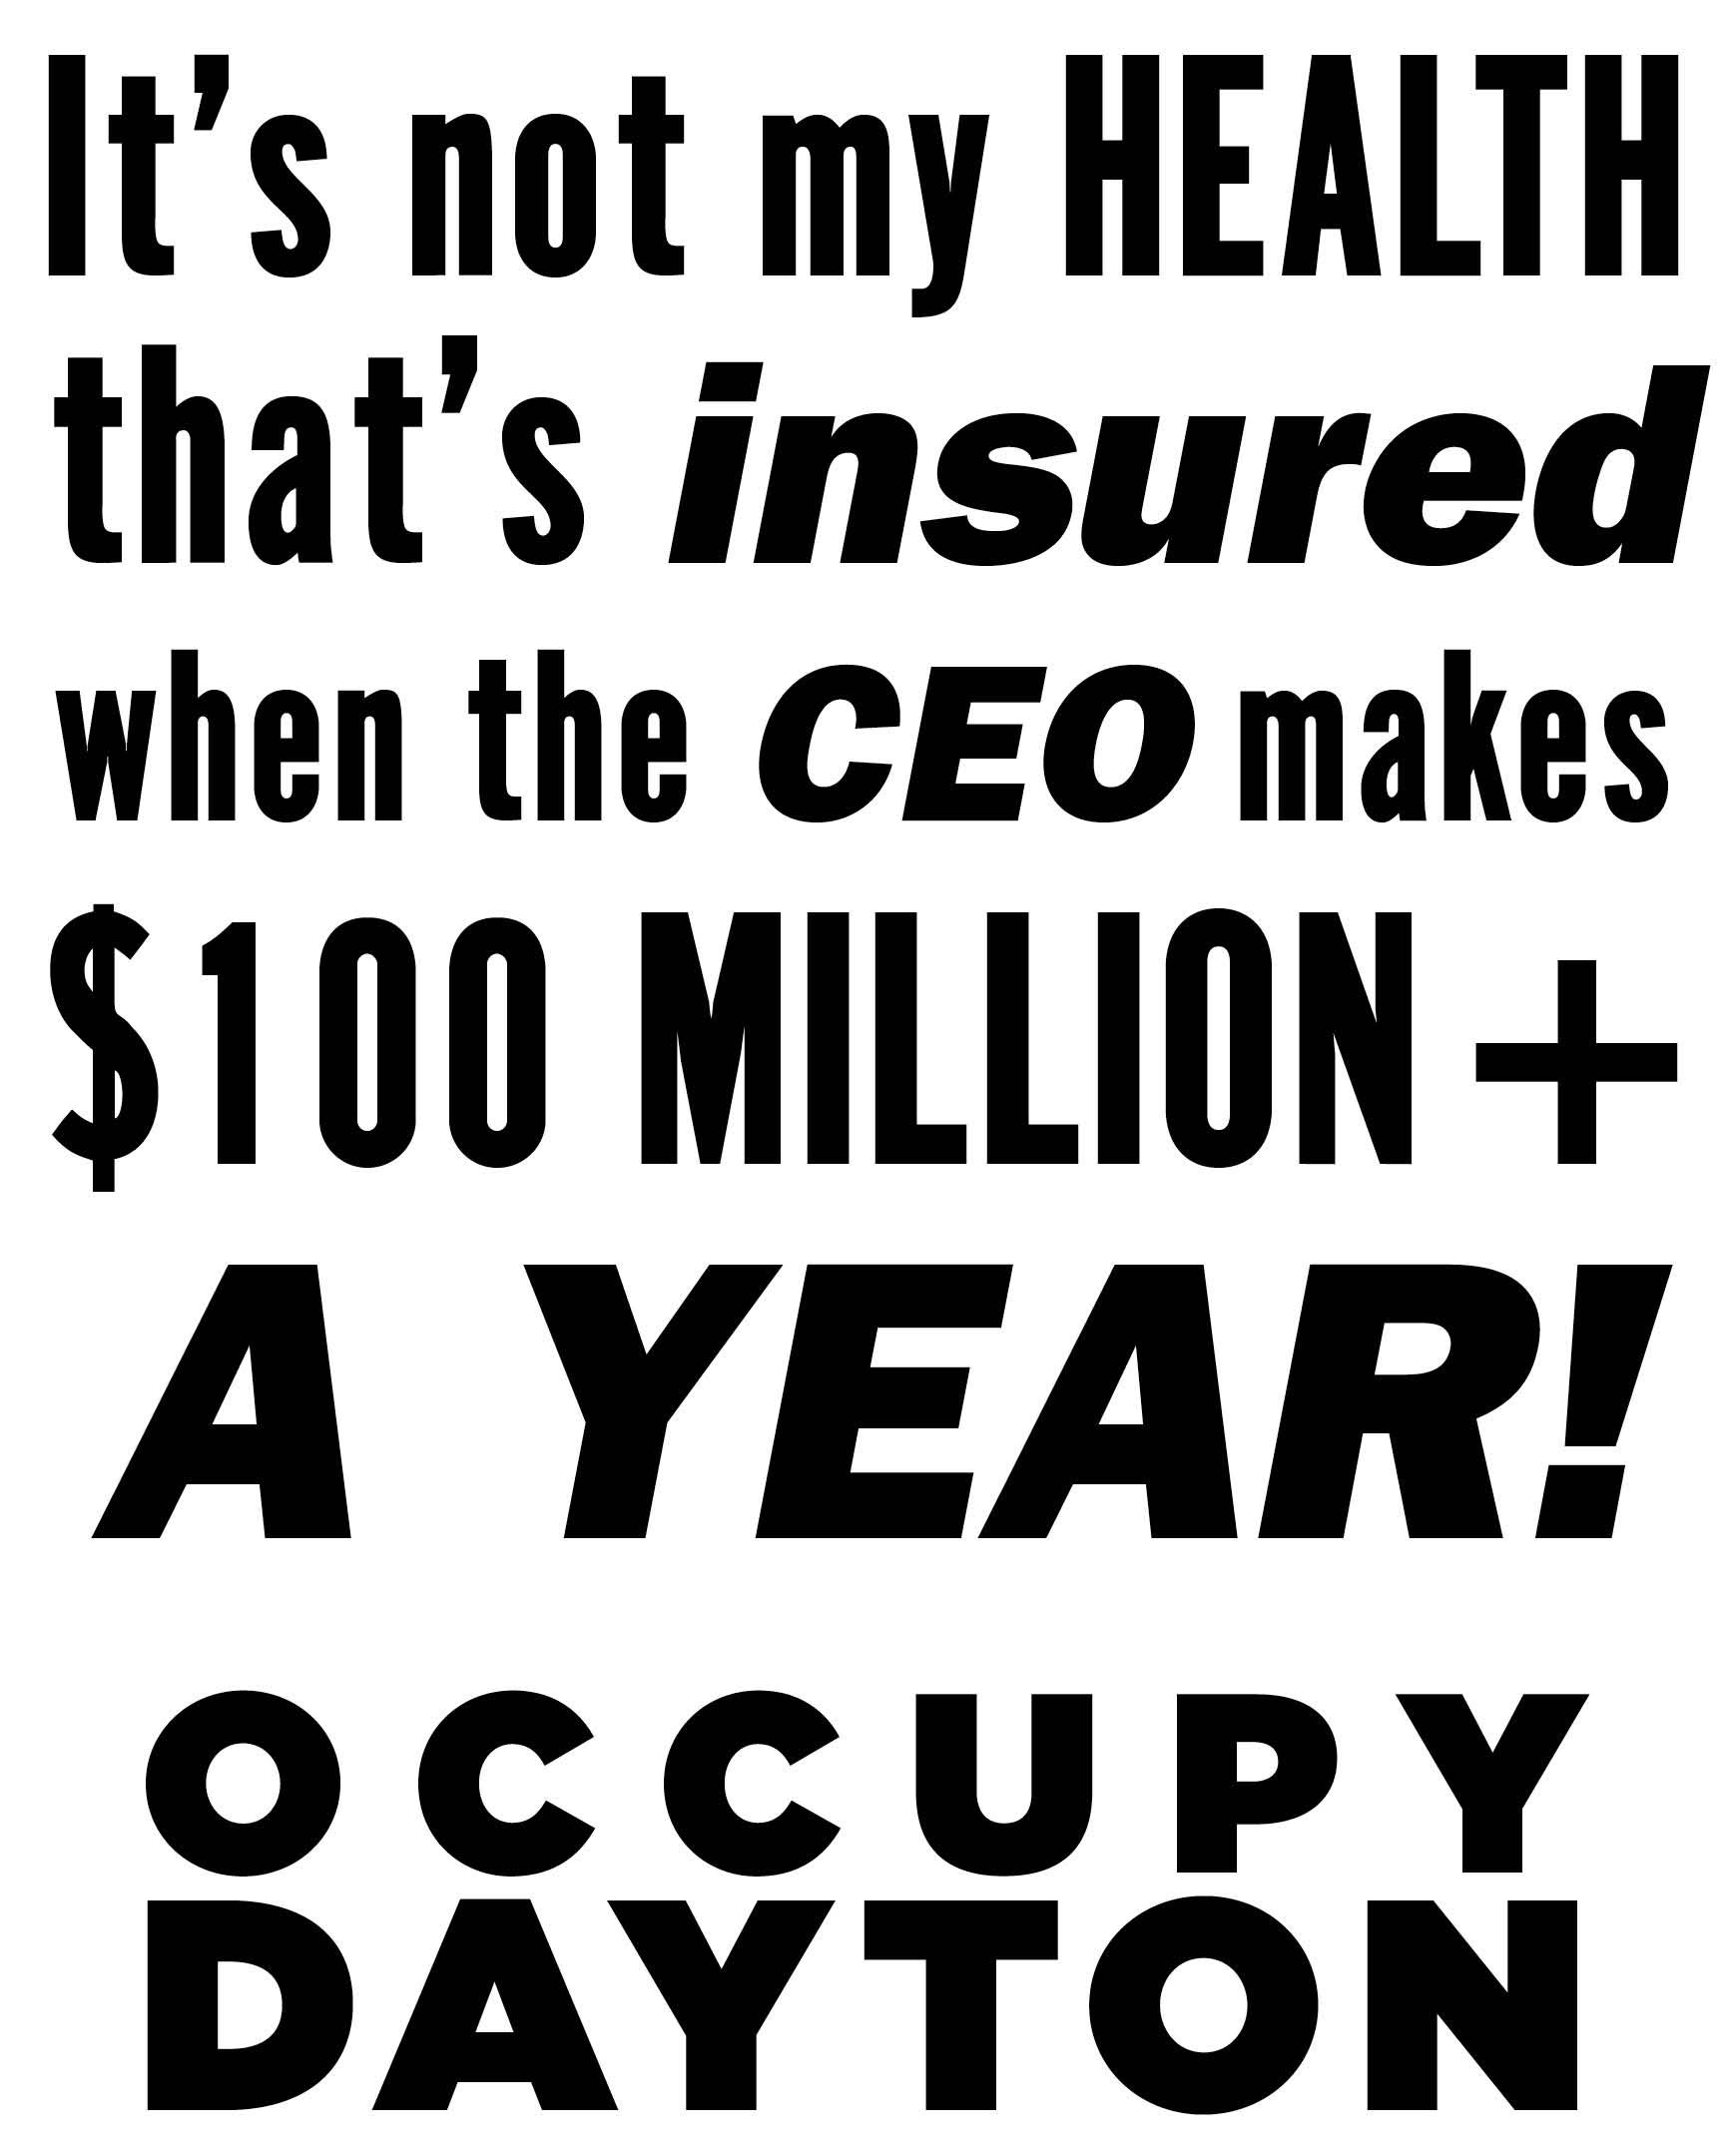 It's not my health that's insured when the CEO makes $100 Million + a year! Occupy Dayton